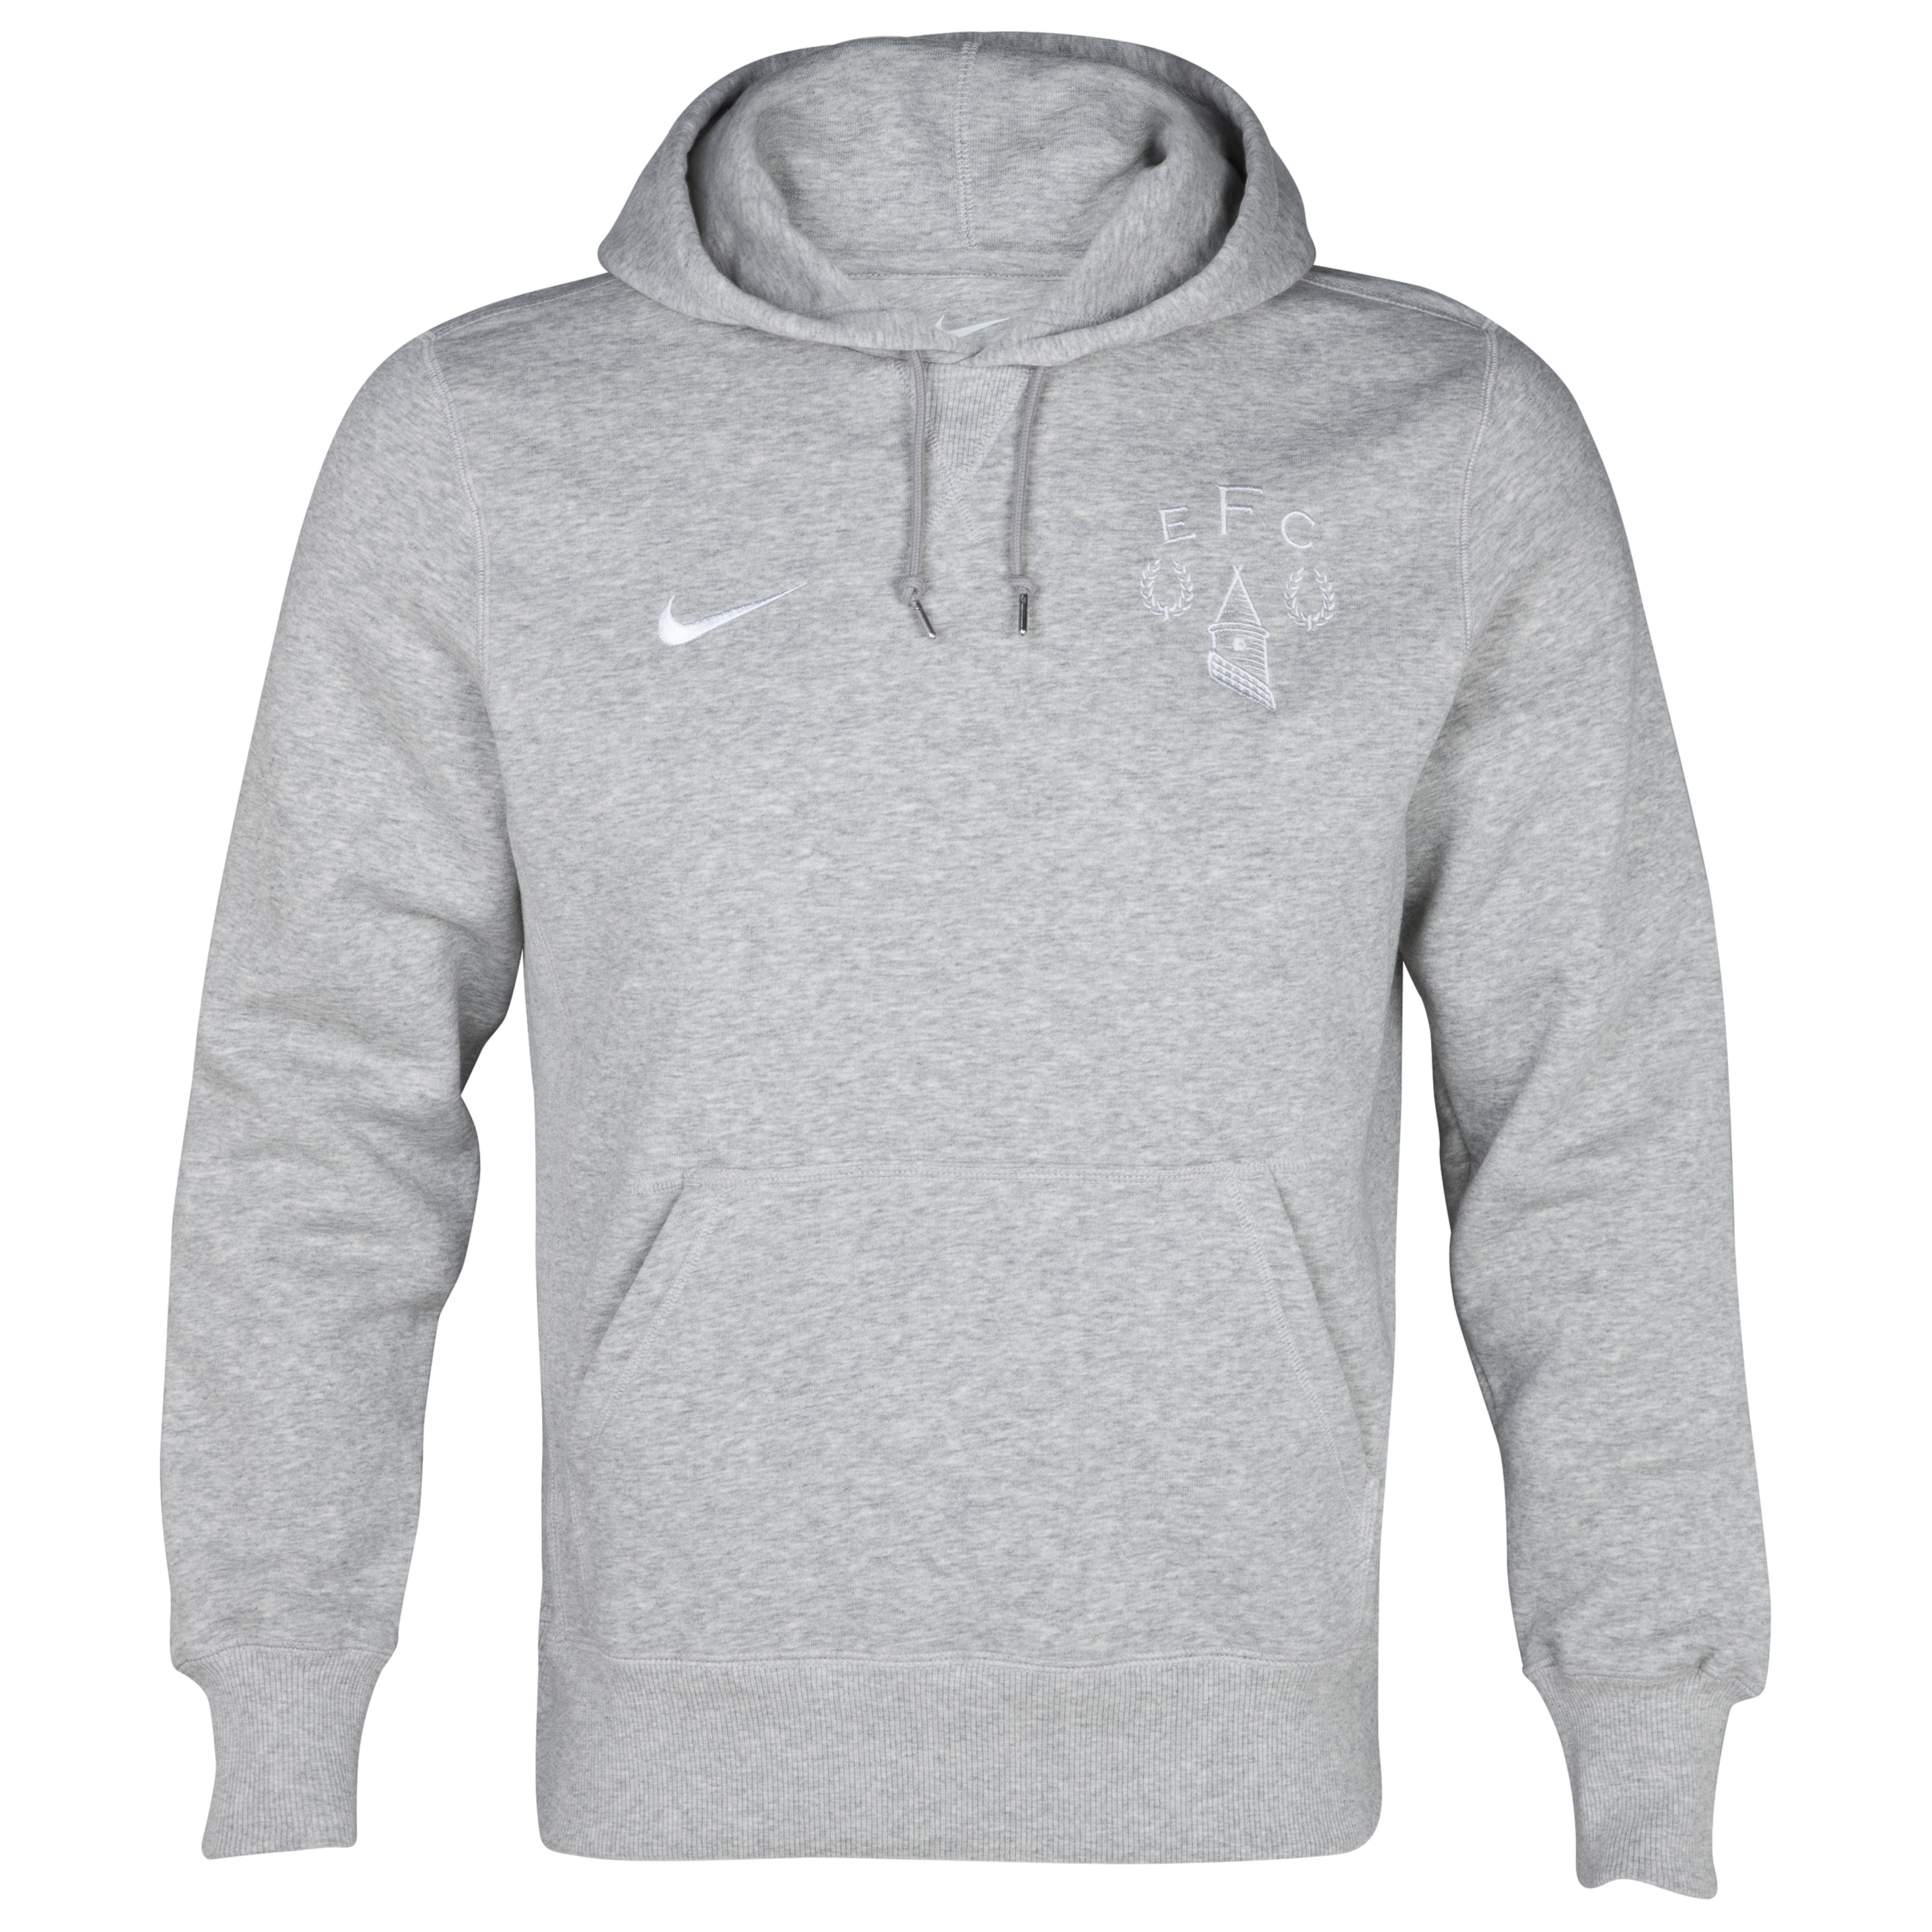 Everton Heritage Fleece Hoodie - Grey Heather/White